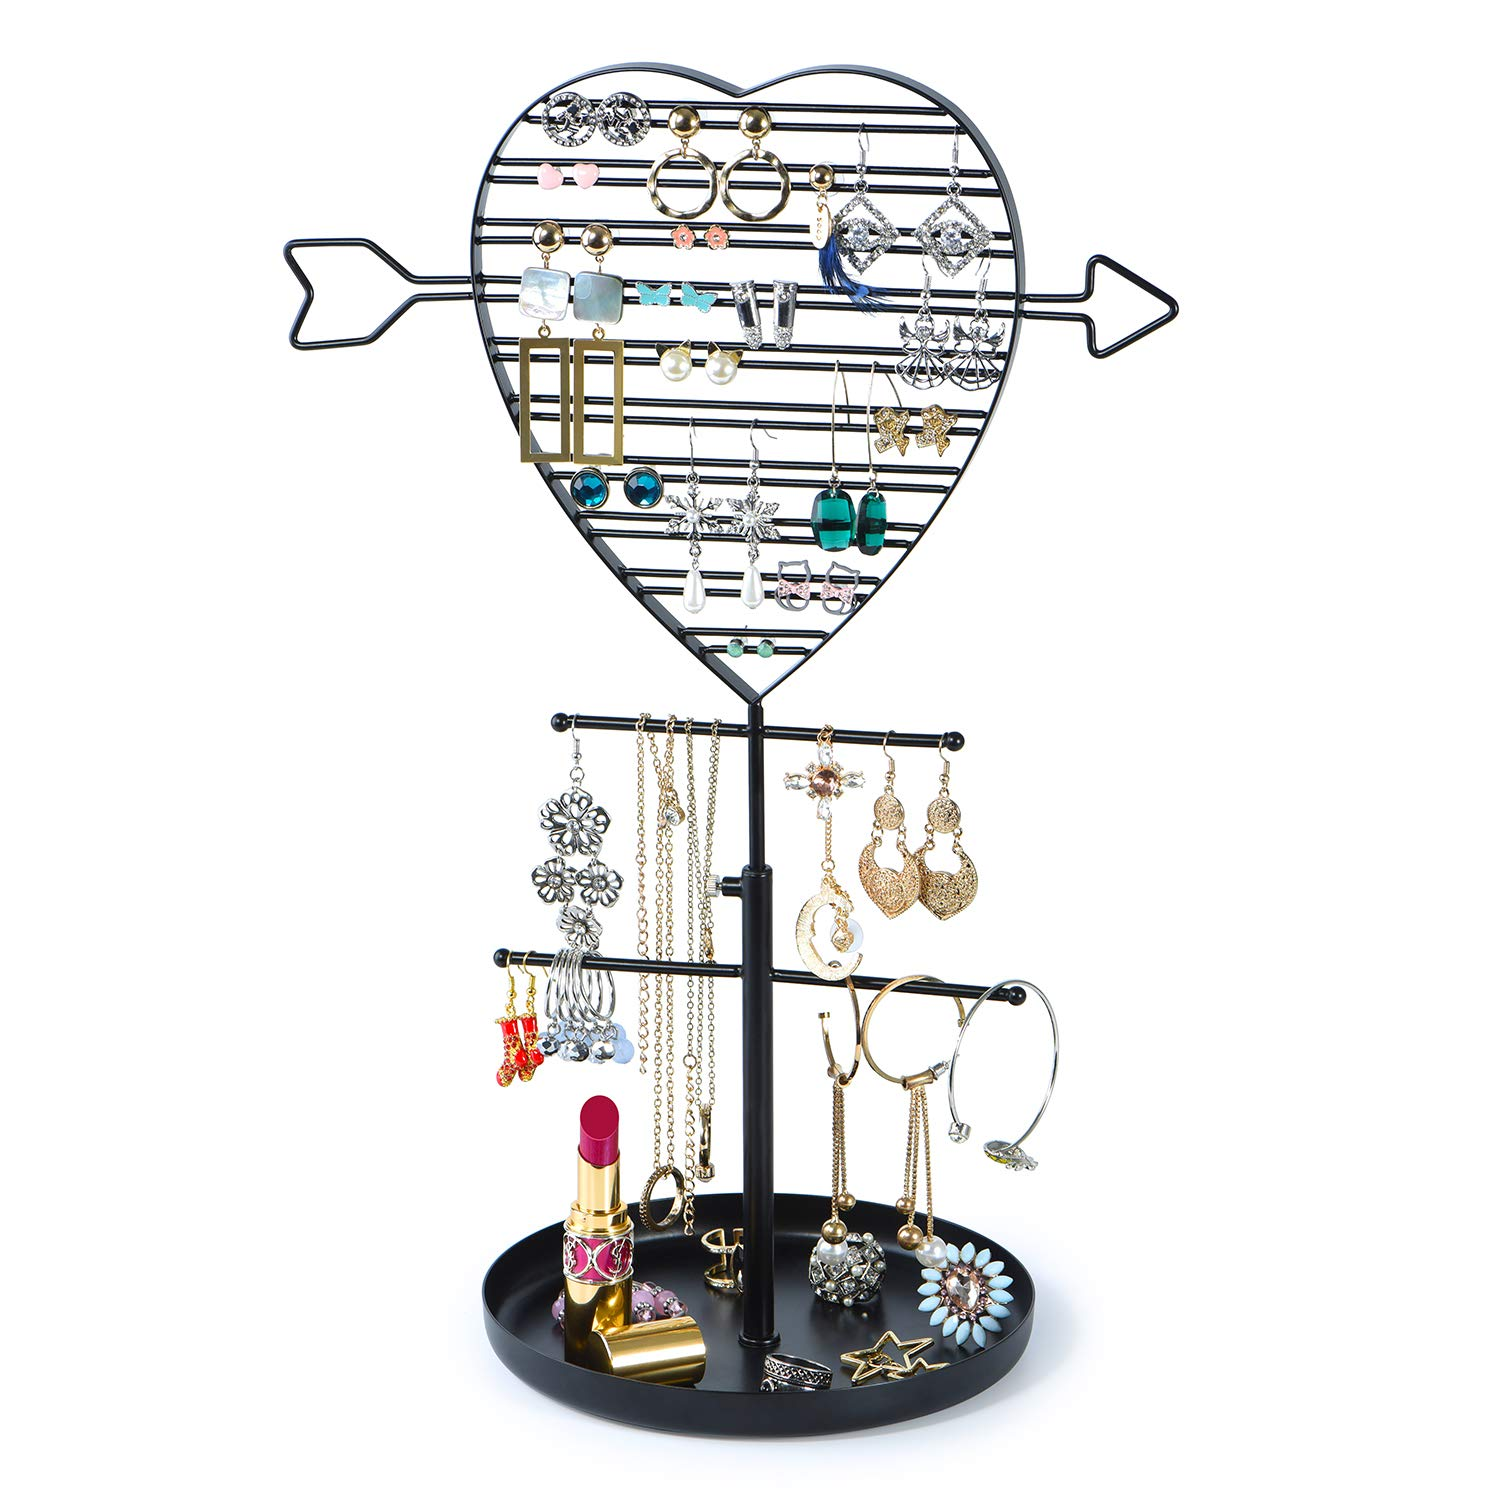 SRIWATANA Jewelry Holder Organizer, Earring Holder Tree, Metal Earring Organizer with Cupid's Arrow Design(Black)